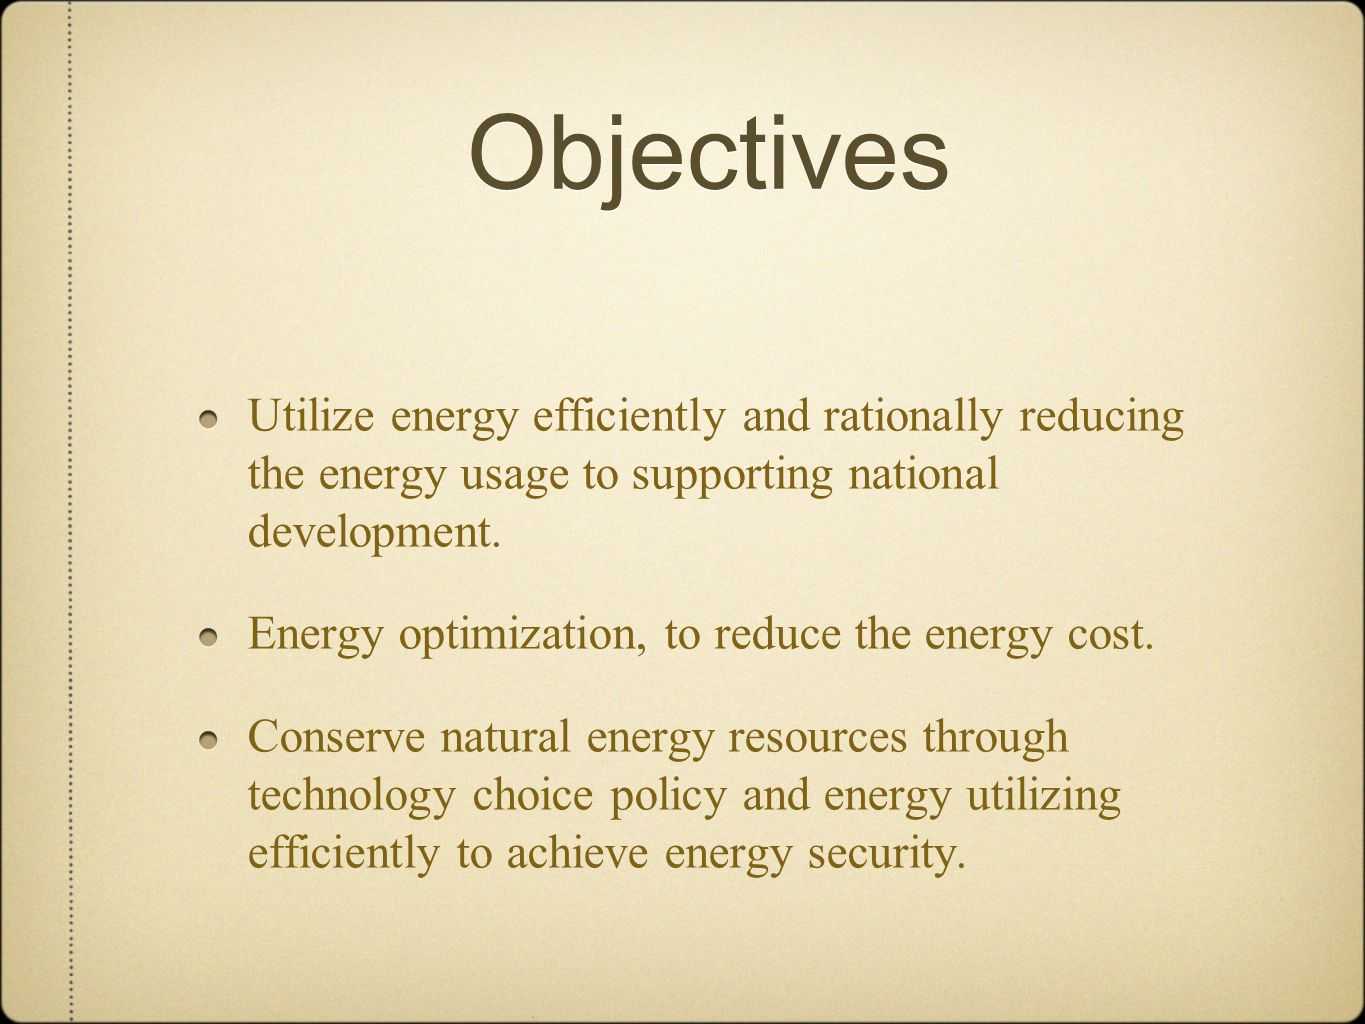 Objectives Utilize energy efficiently and rationally reducing the energy usage to supporting national development.